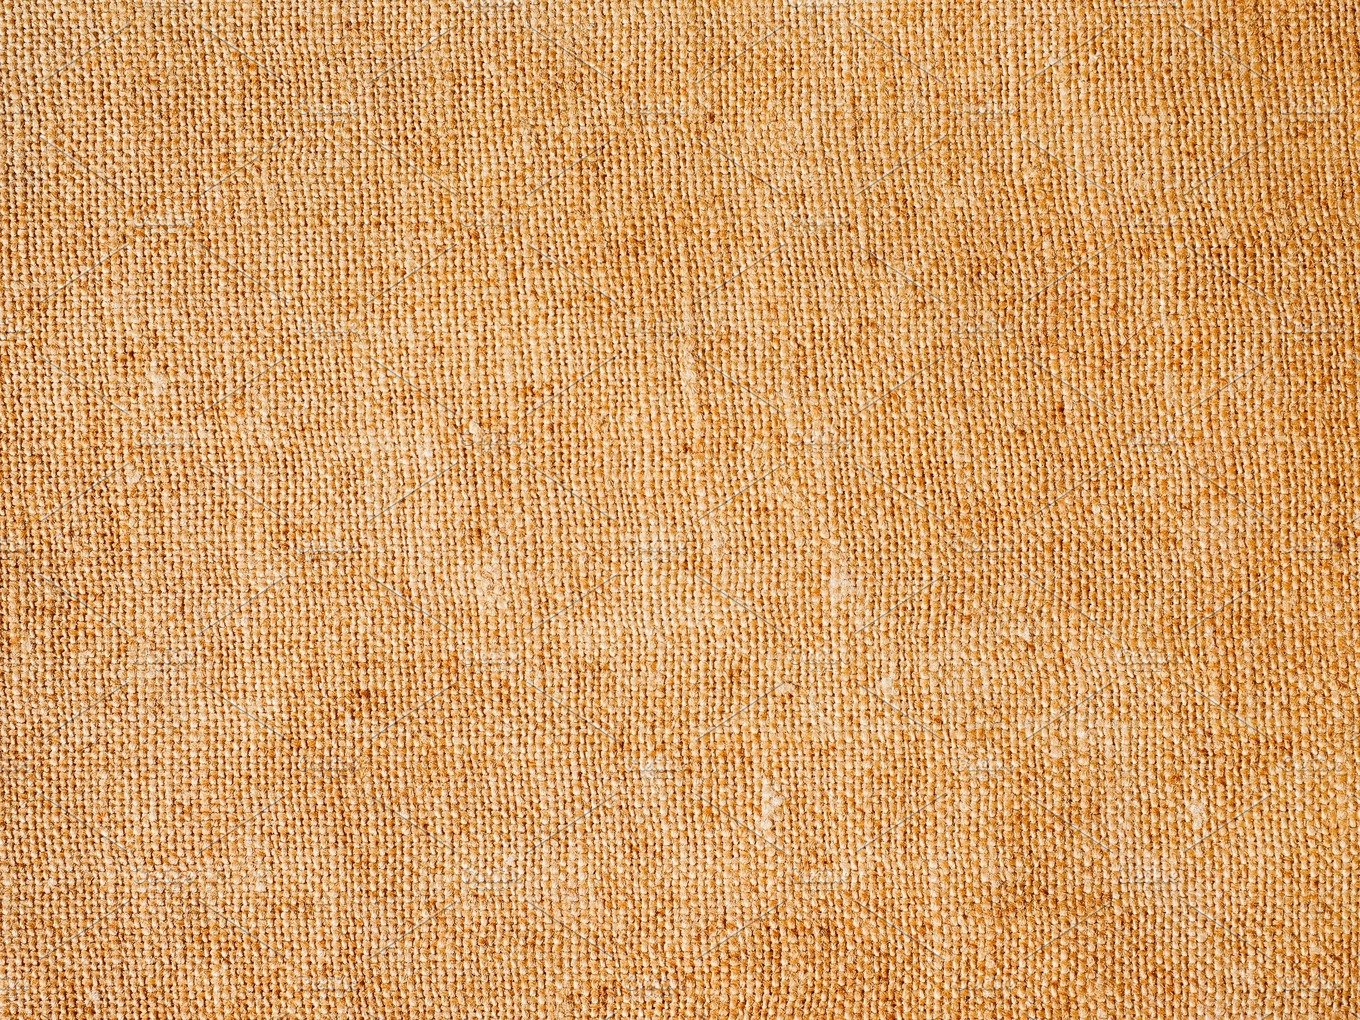 Burlap Hessian Fabric Background Abstract Photos